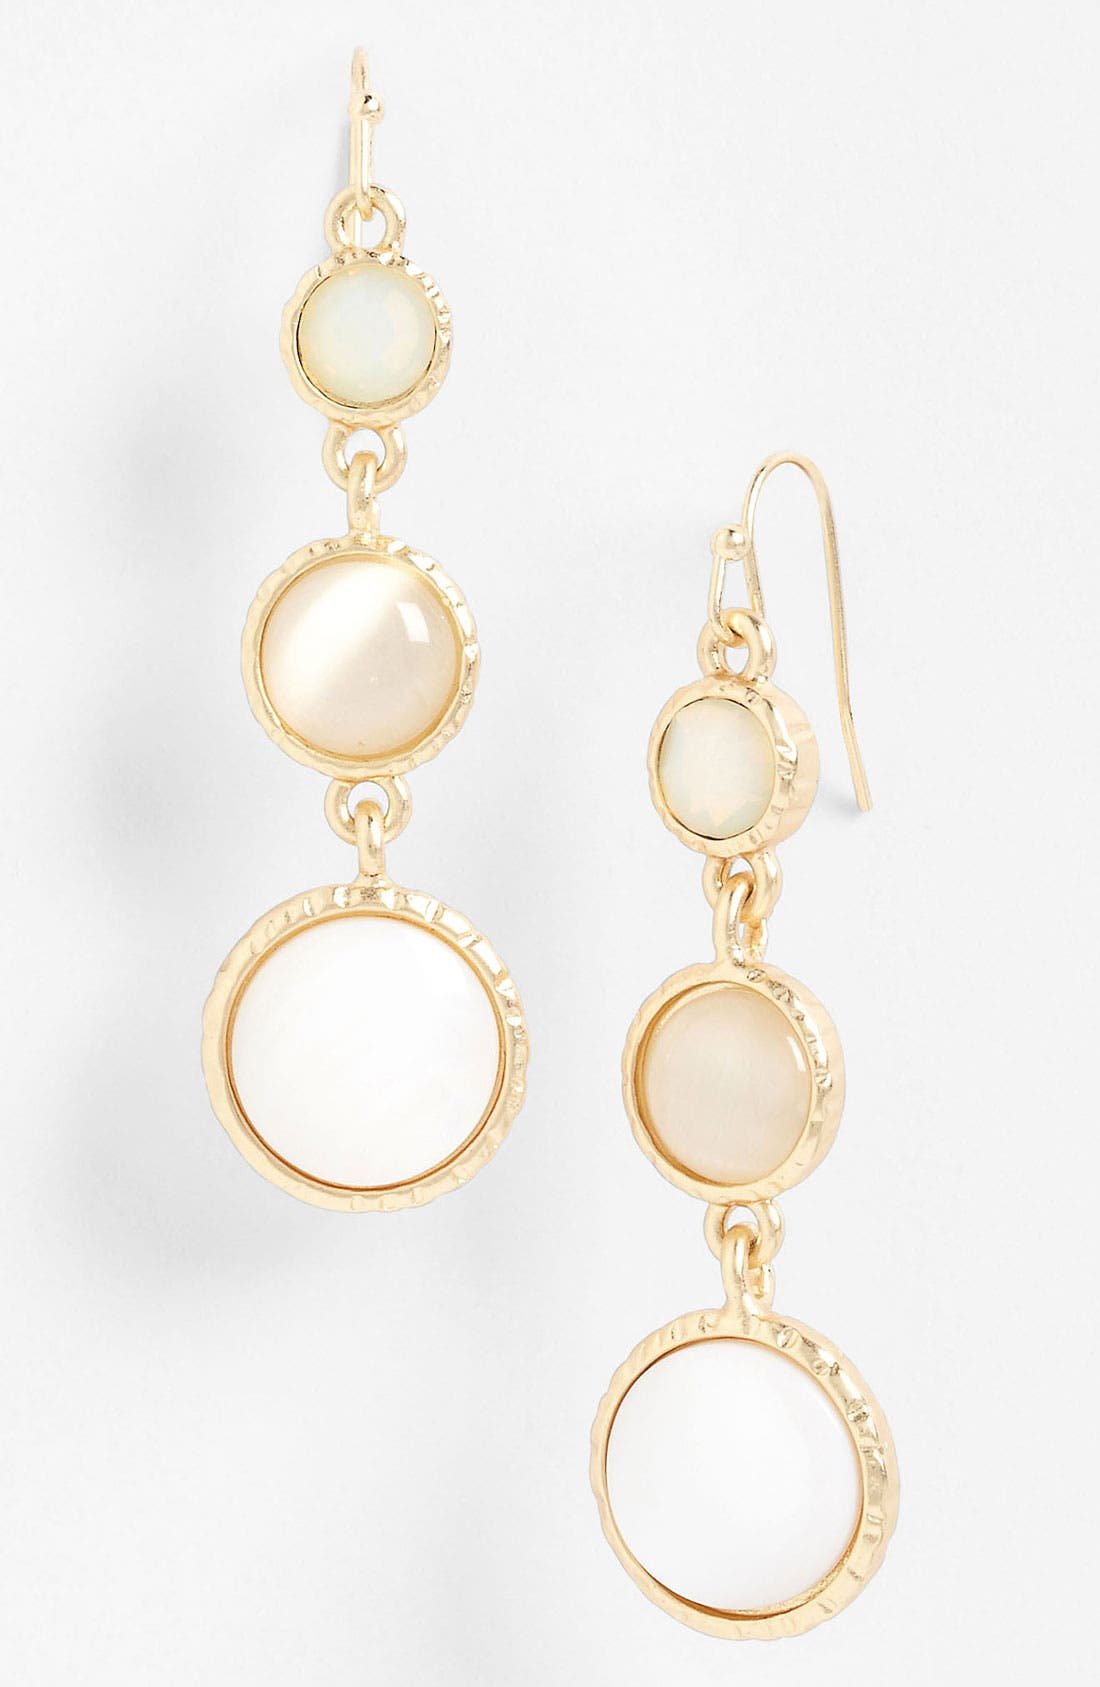 Main Image - Nordstrom 'Santorini' Linear Earrings